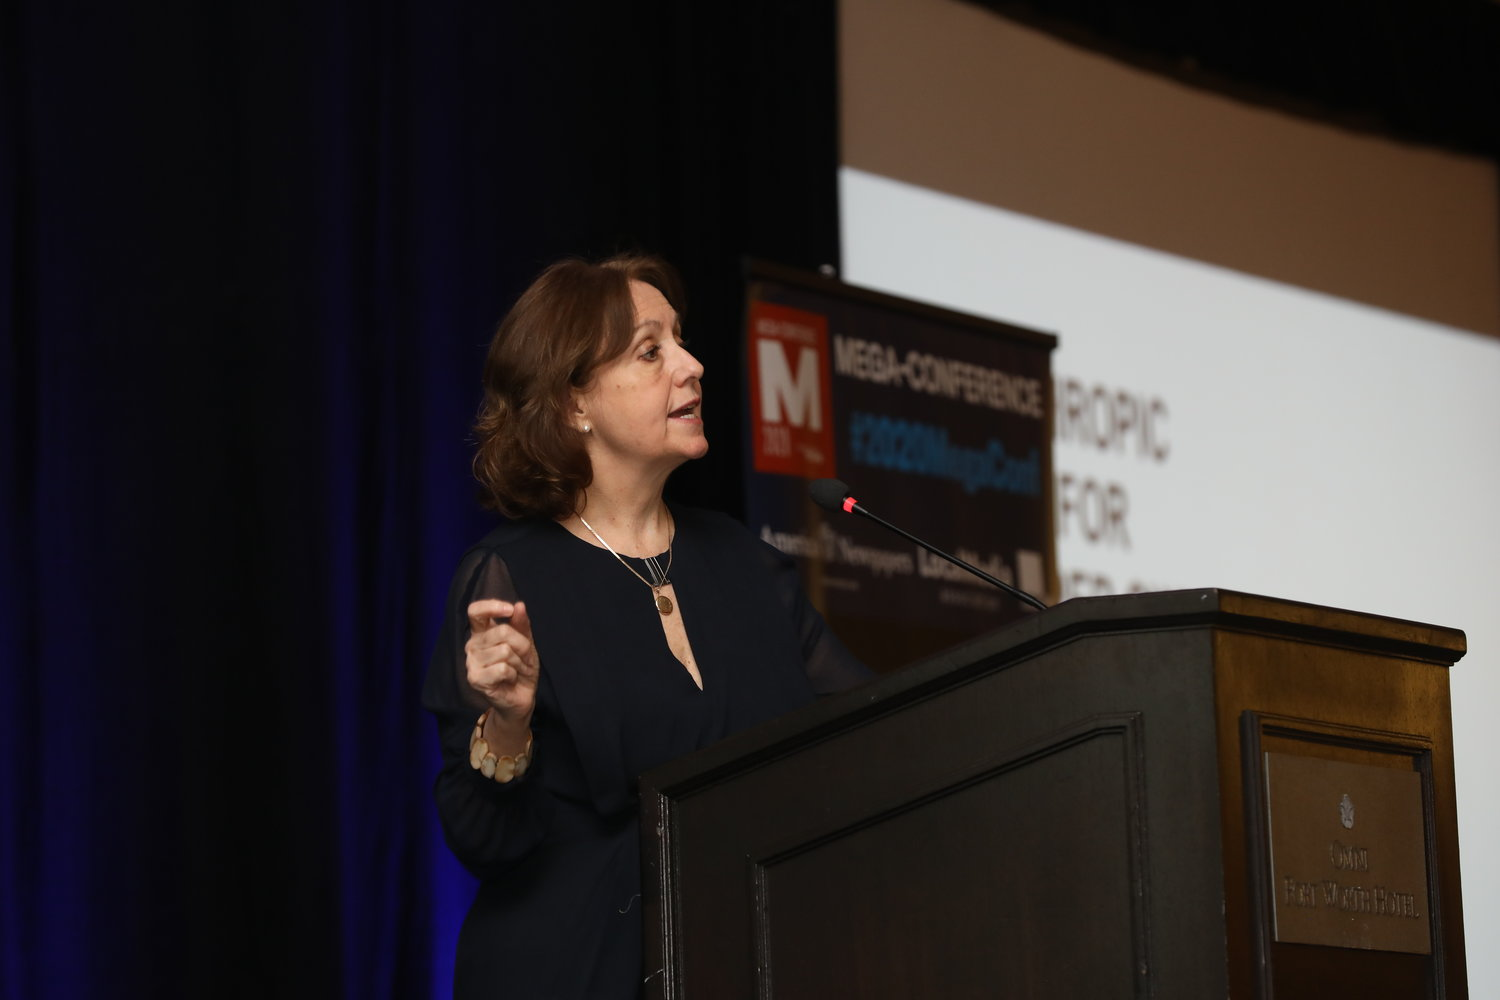 Jennifer Preston of the Knight Foundation at the 2020 Mega-Conference. (Photo by Bob Booth)